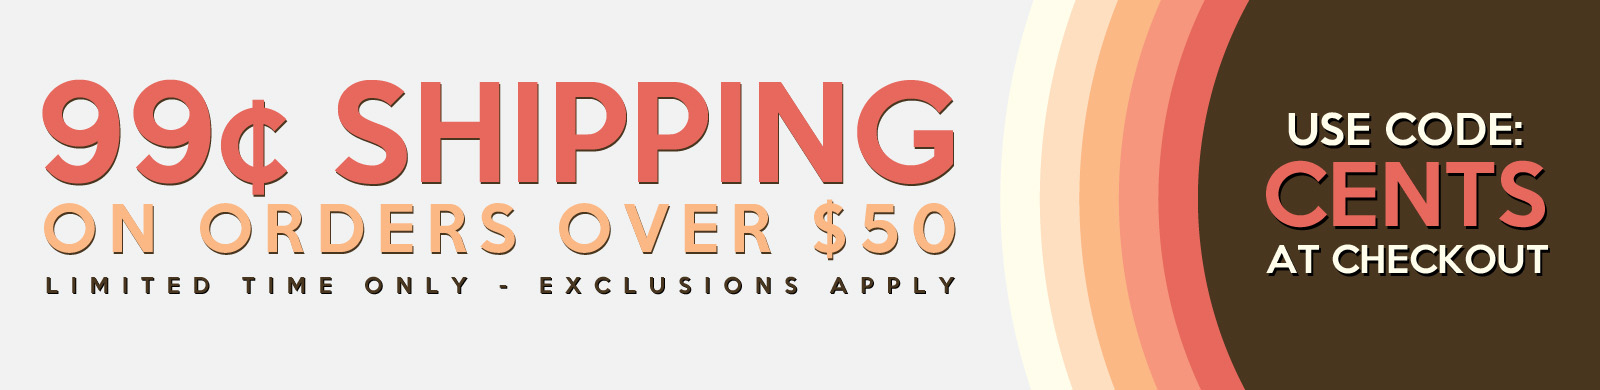 99¢ Shipping on Orders Over $50